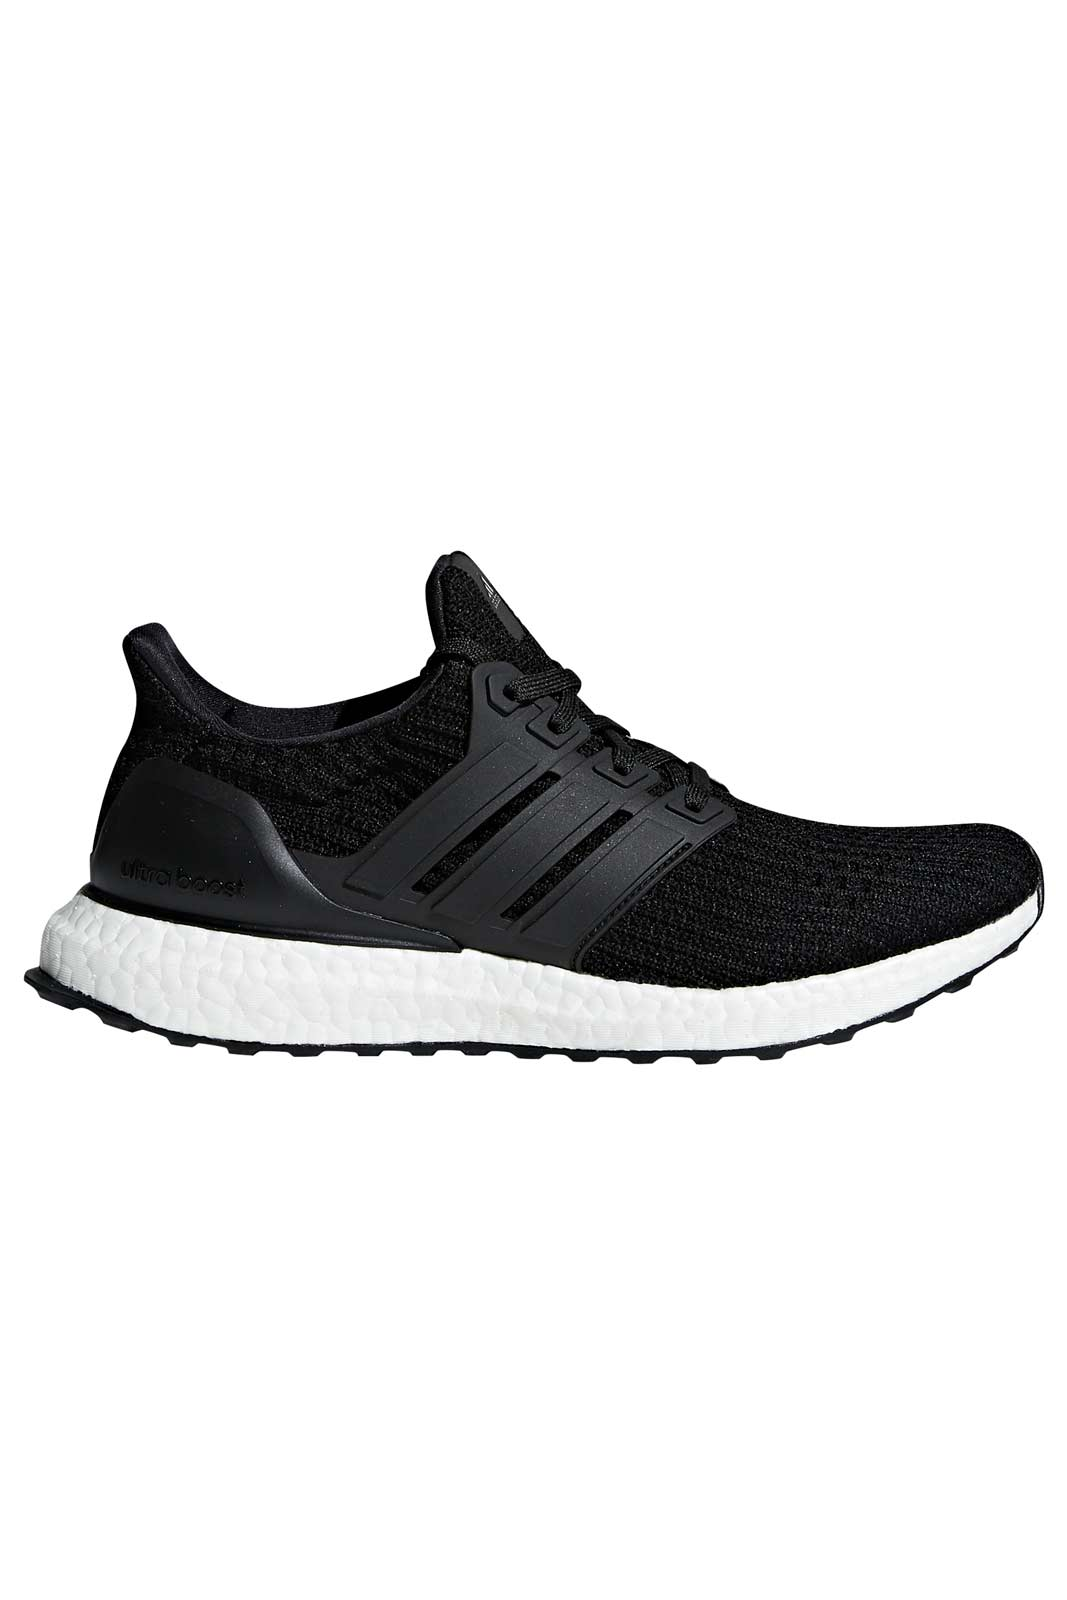 ADIDAS Ultra Boost 4.0 - Core Black - Women's image 1 - The Sports Edit